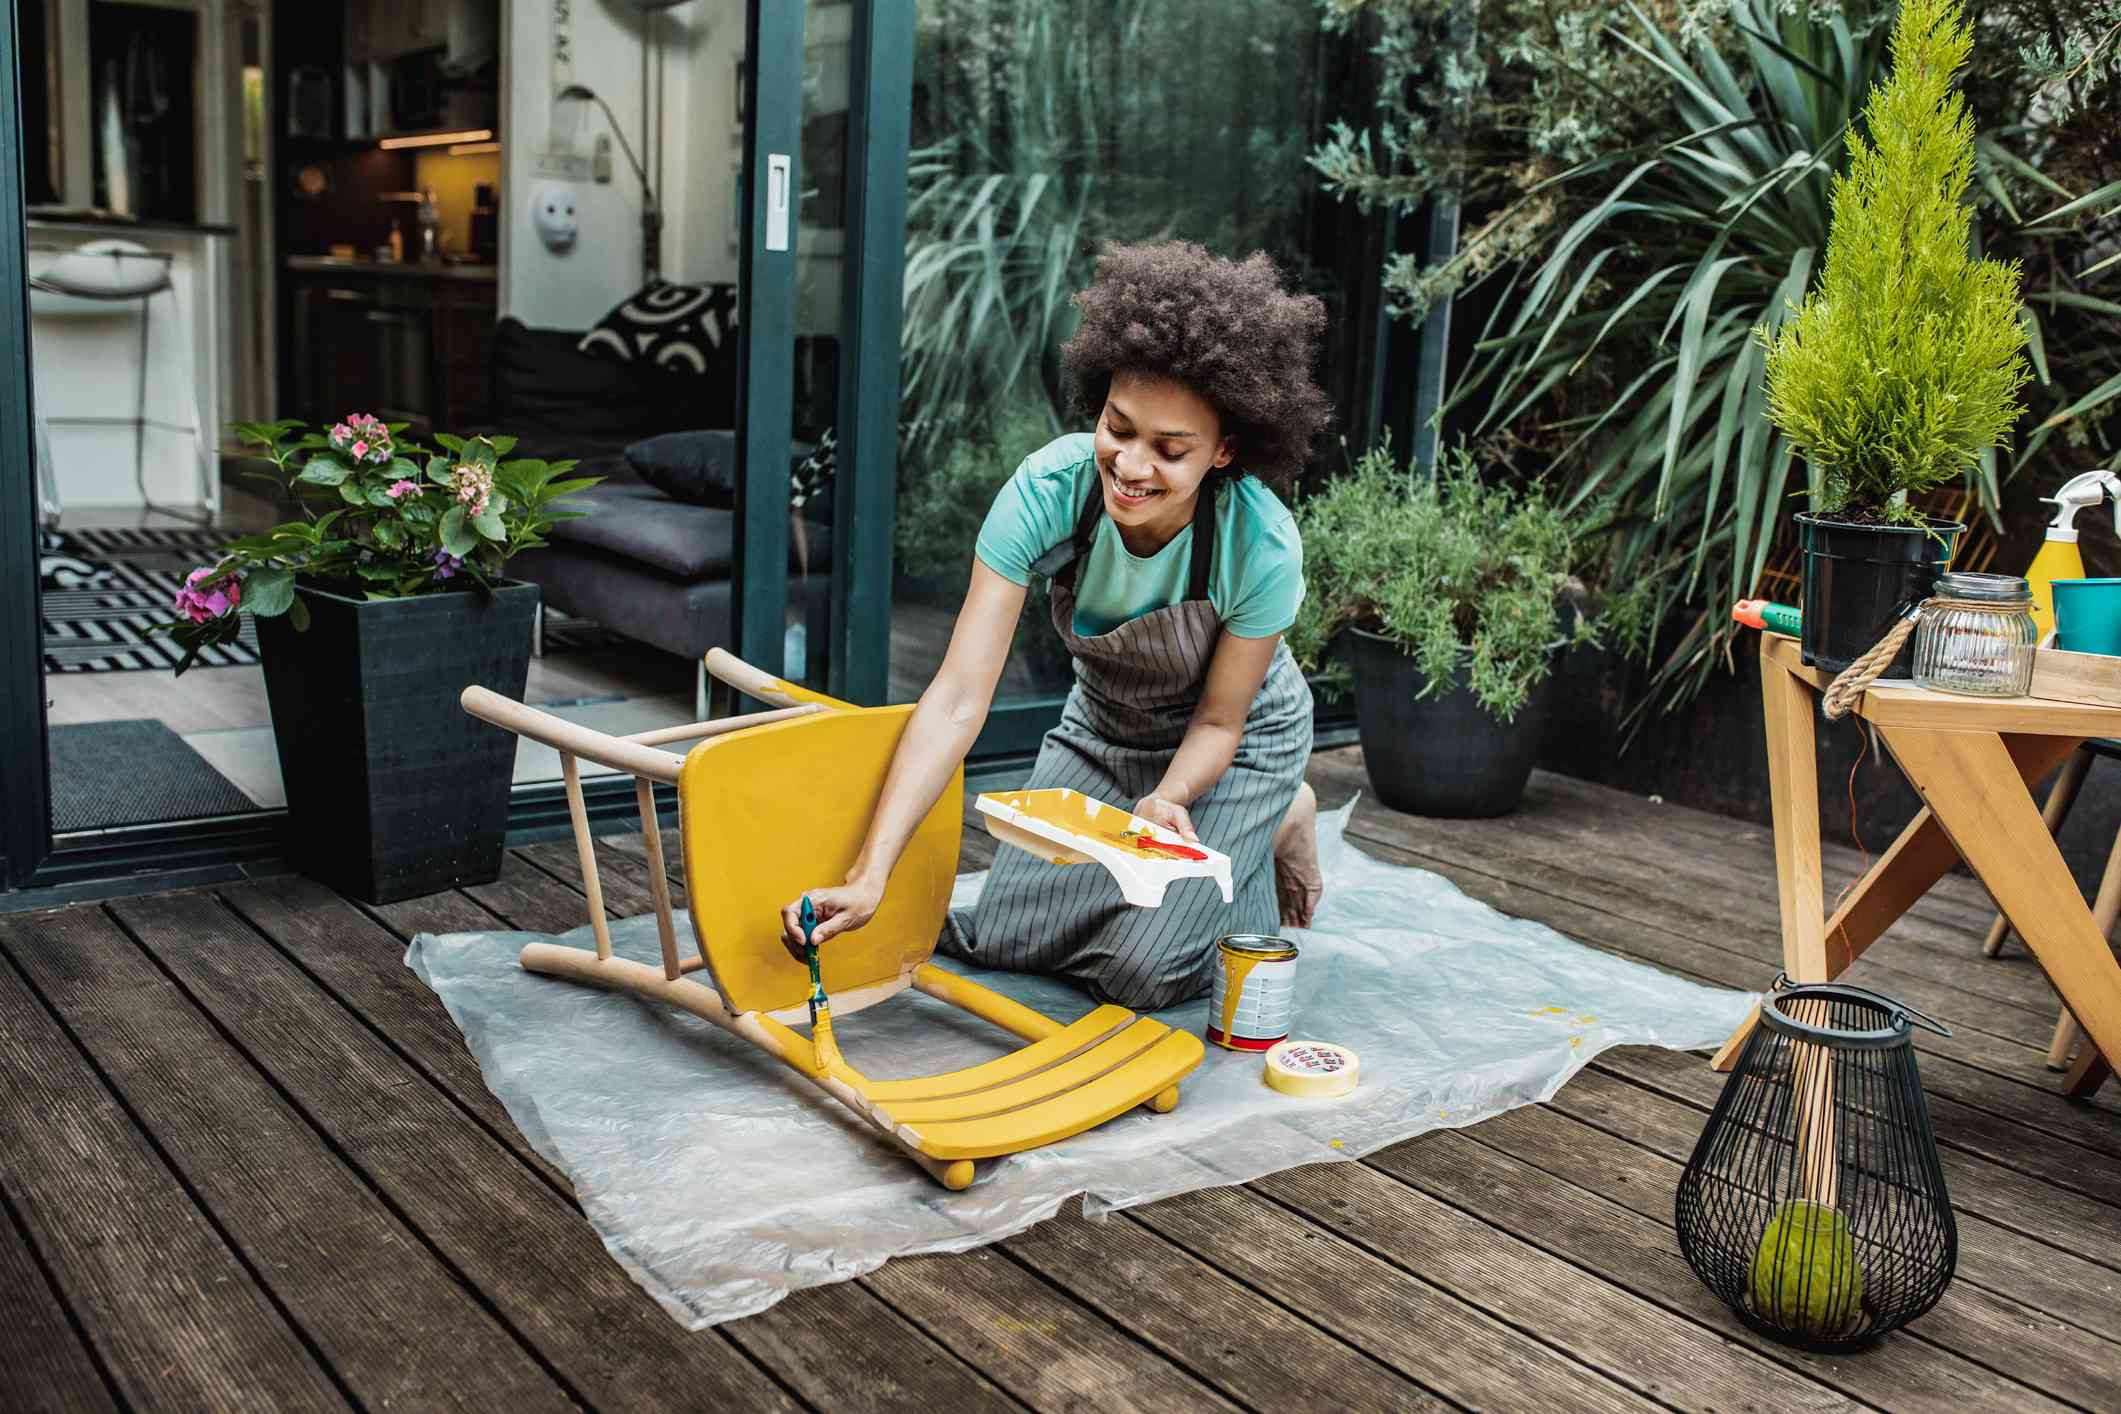 Woman paints chair yellow